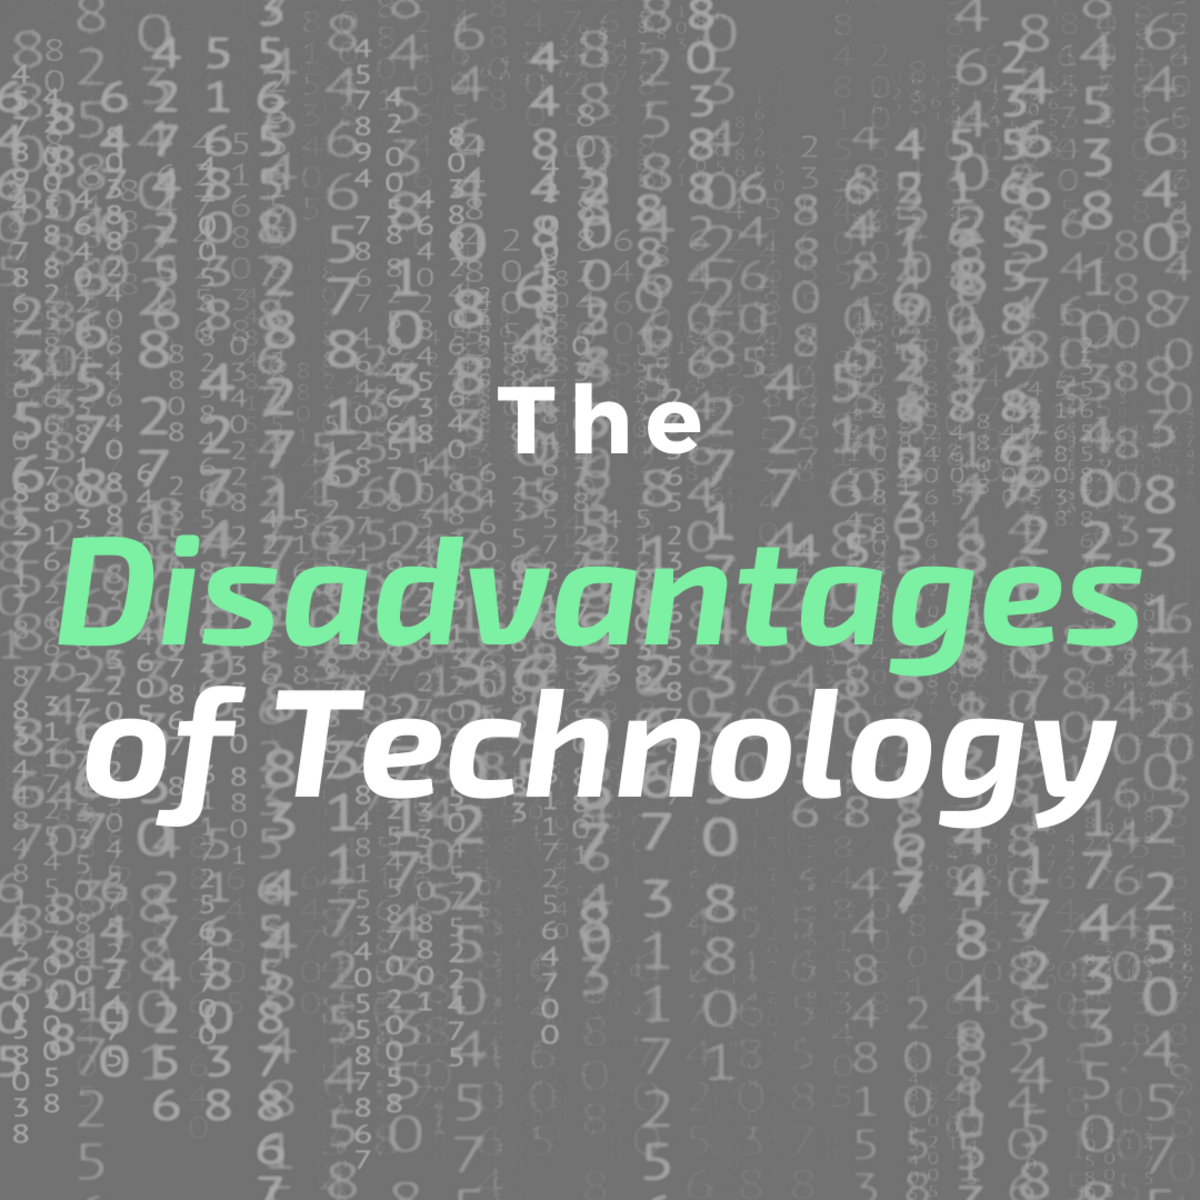 Now let's look at several disadvantages of technology and how they affect us.